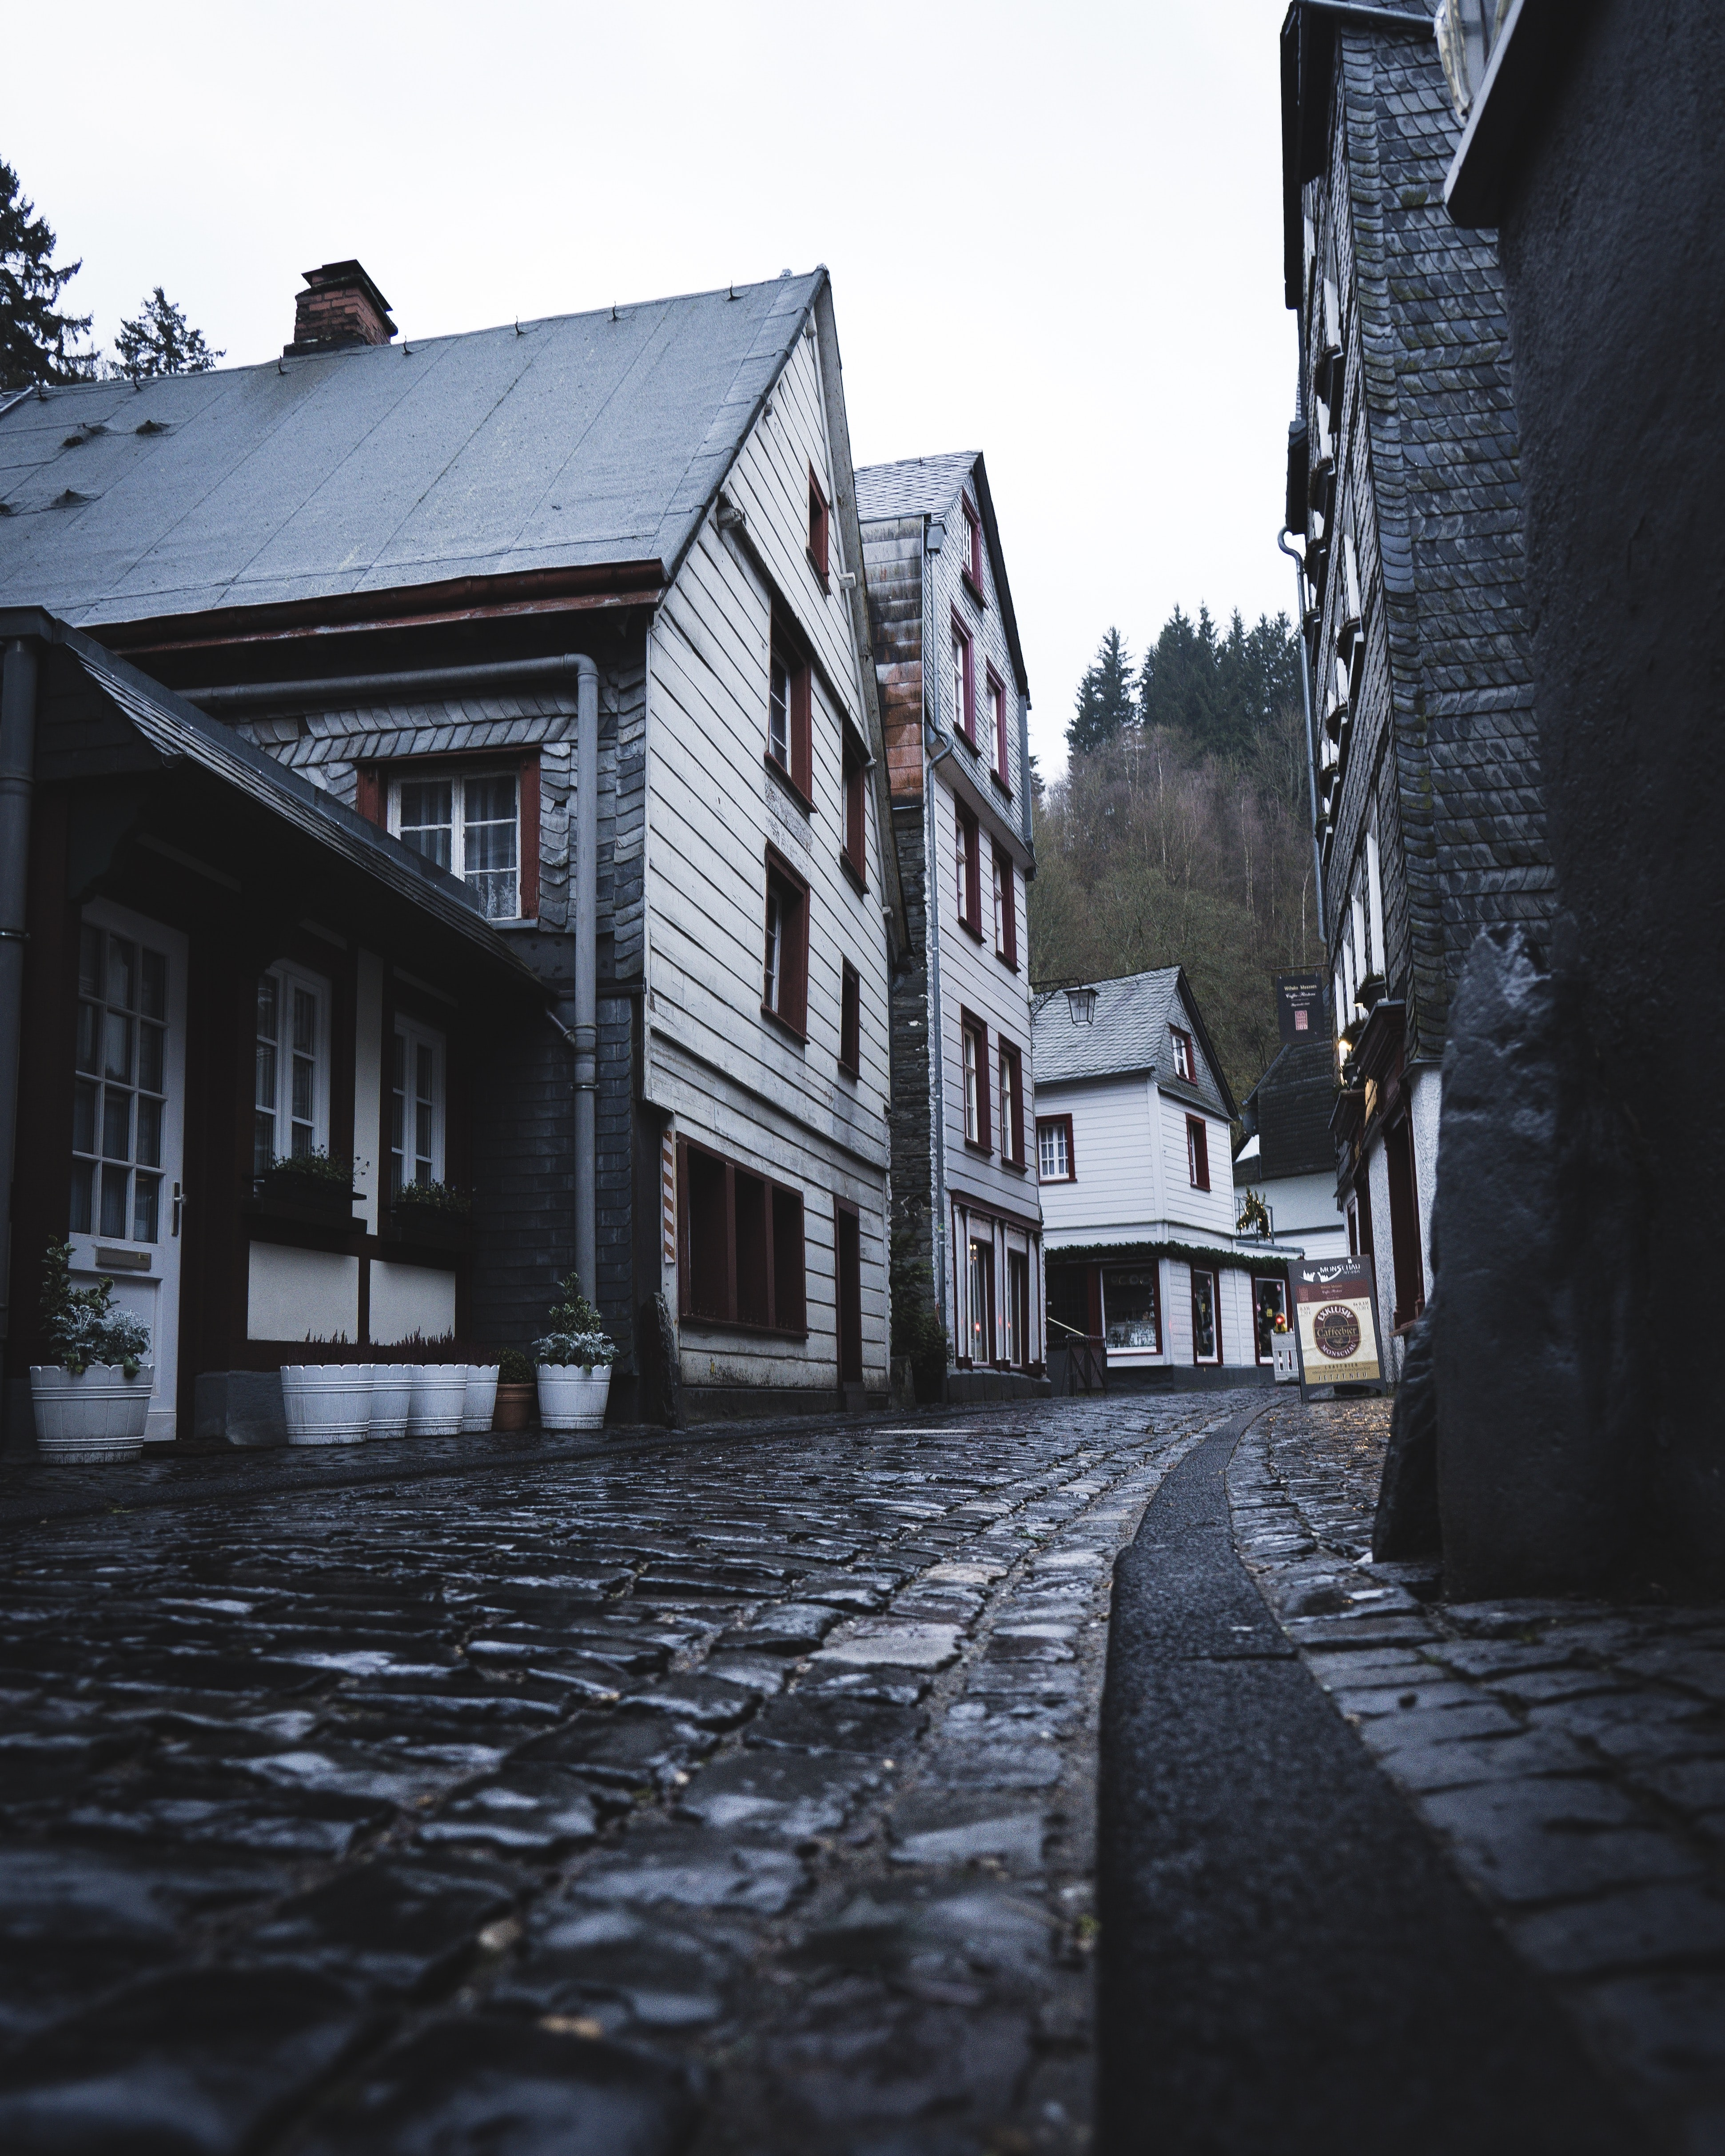 empty narrow street during daytime